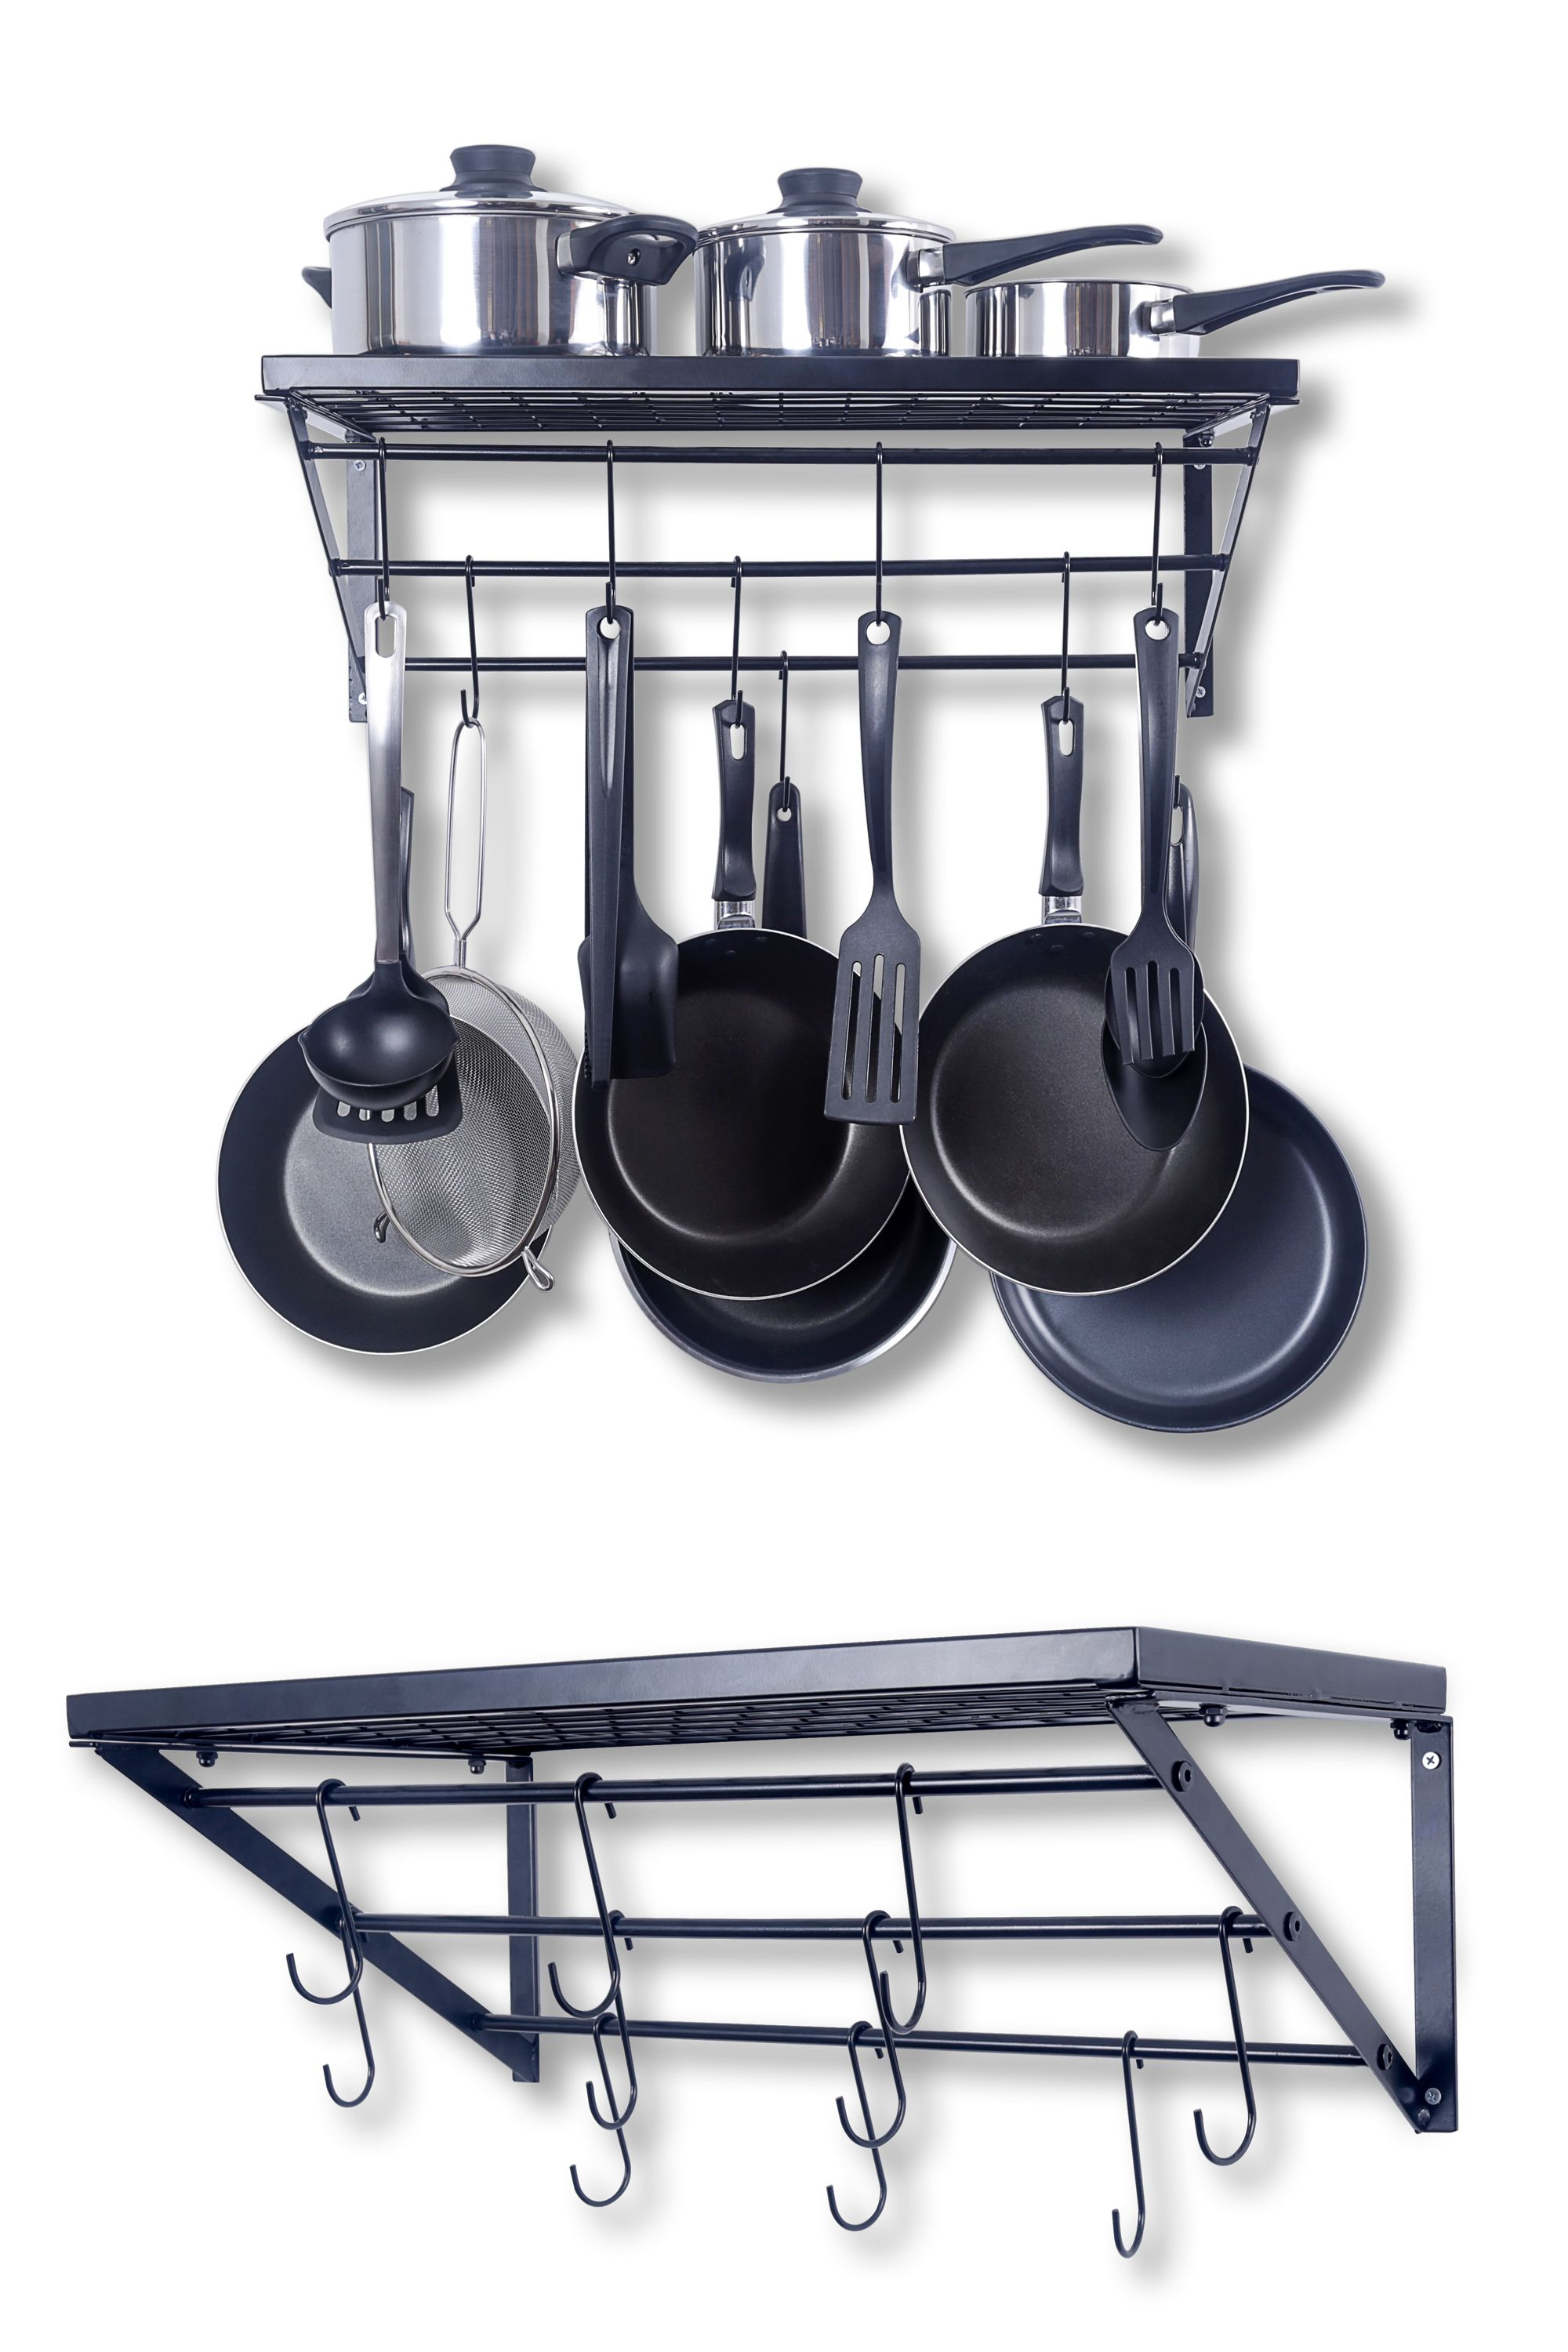 Multifunctional pot and pan organizer perfect for kitchen storage organization